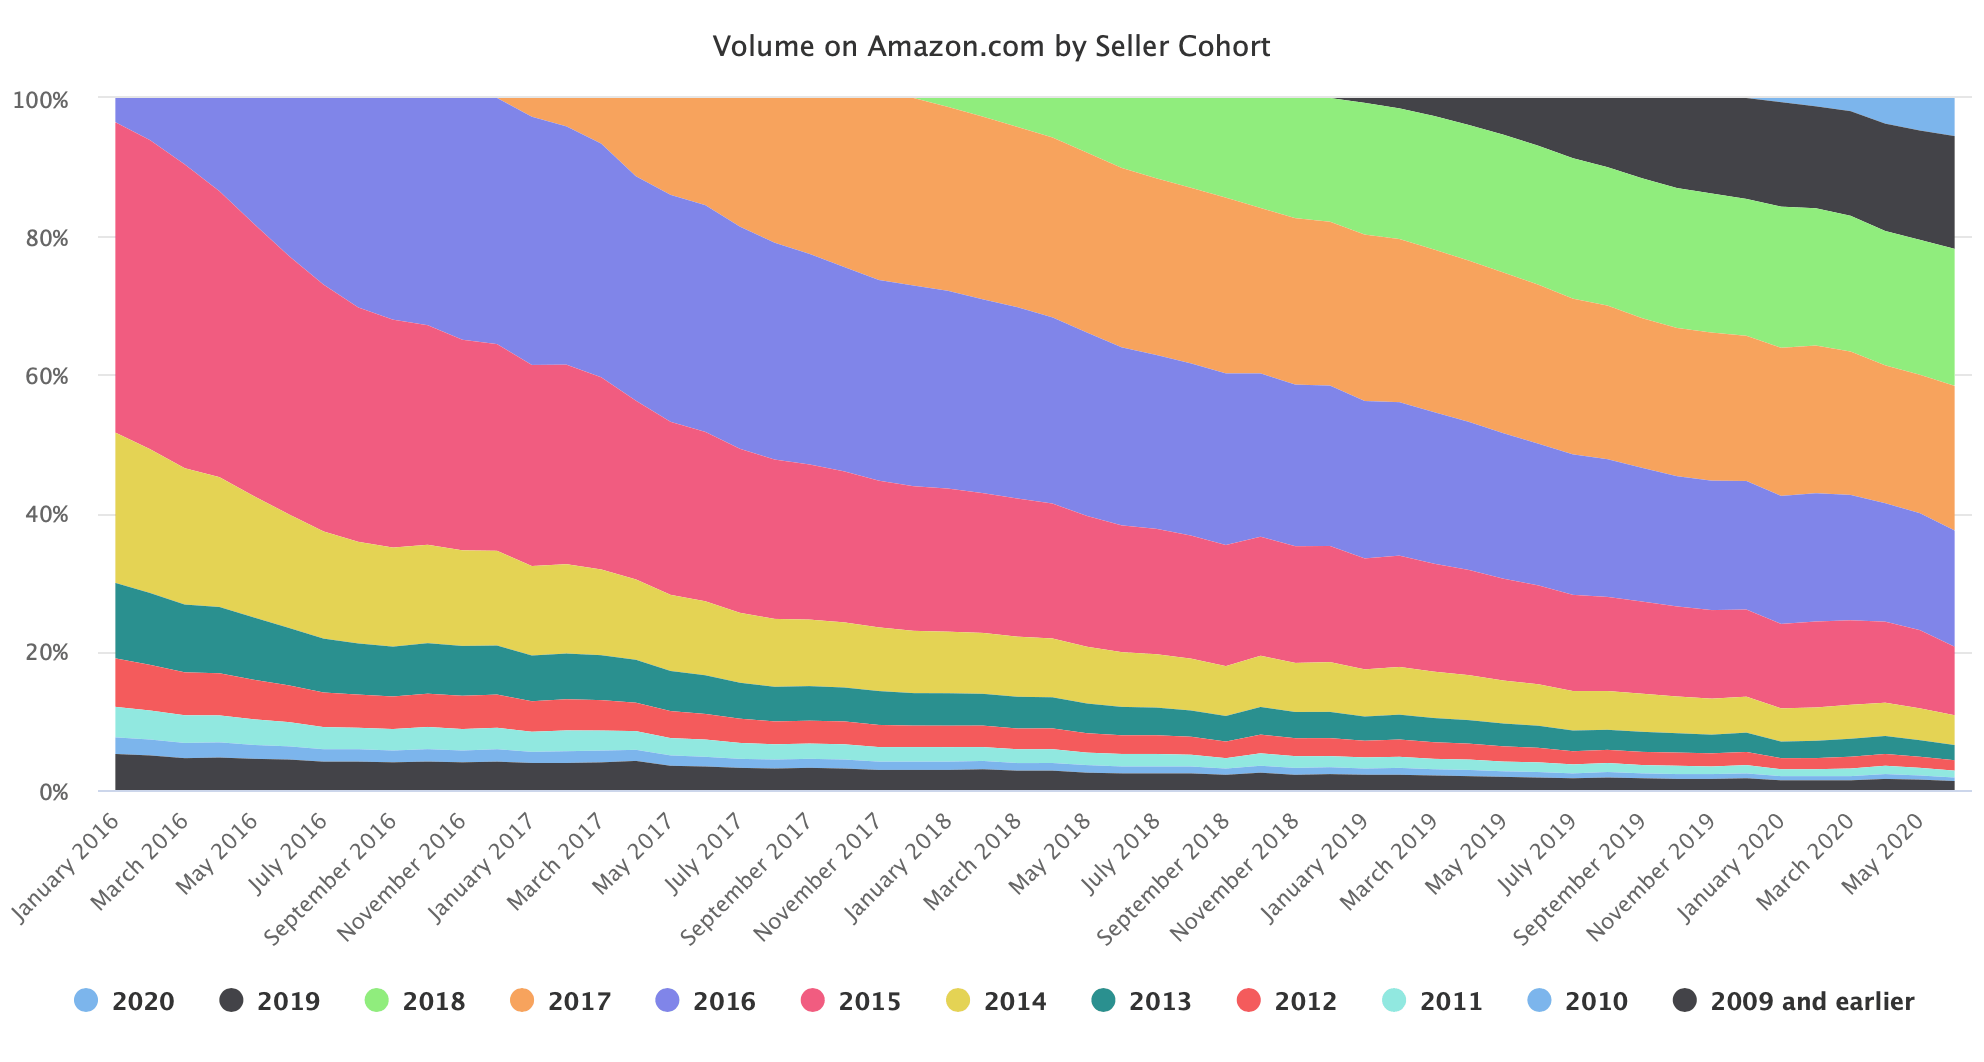 Volume on Amazon.com by Seller Cohort